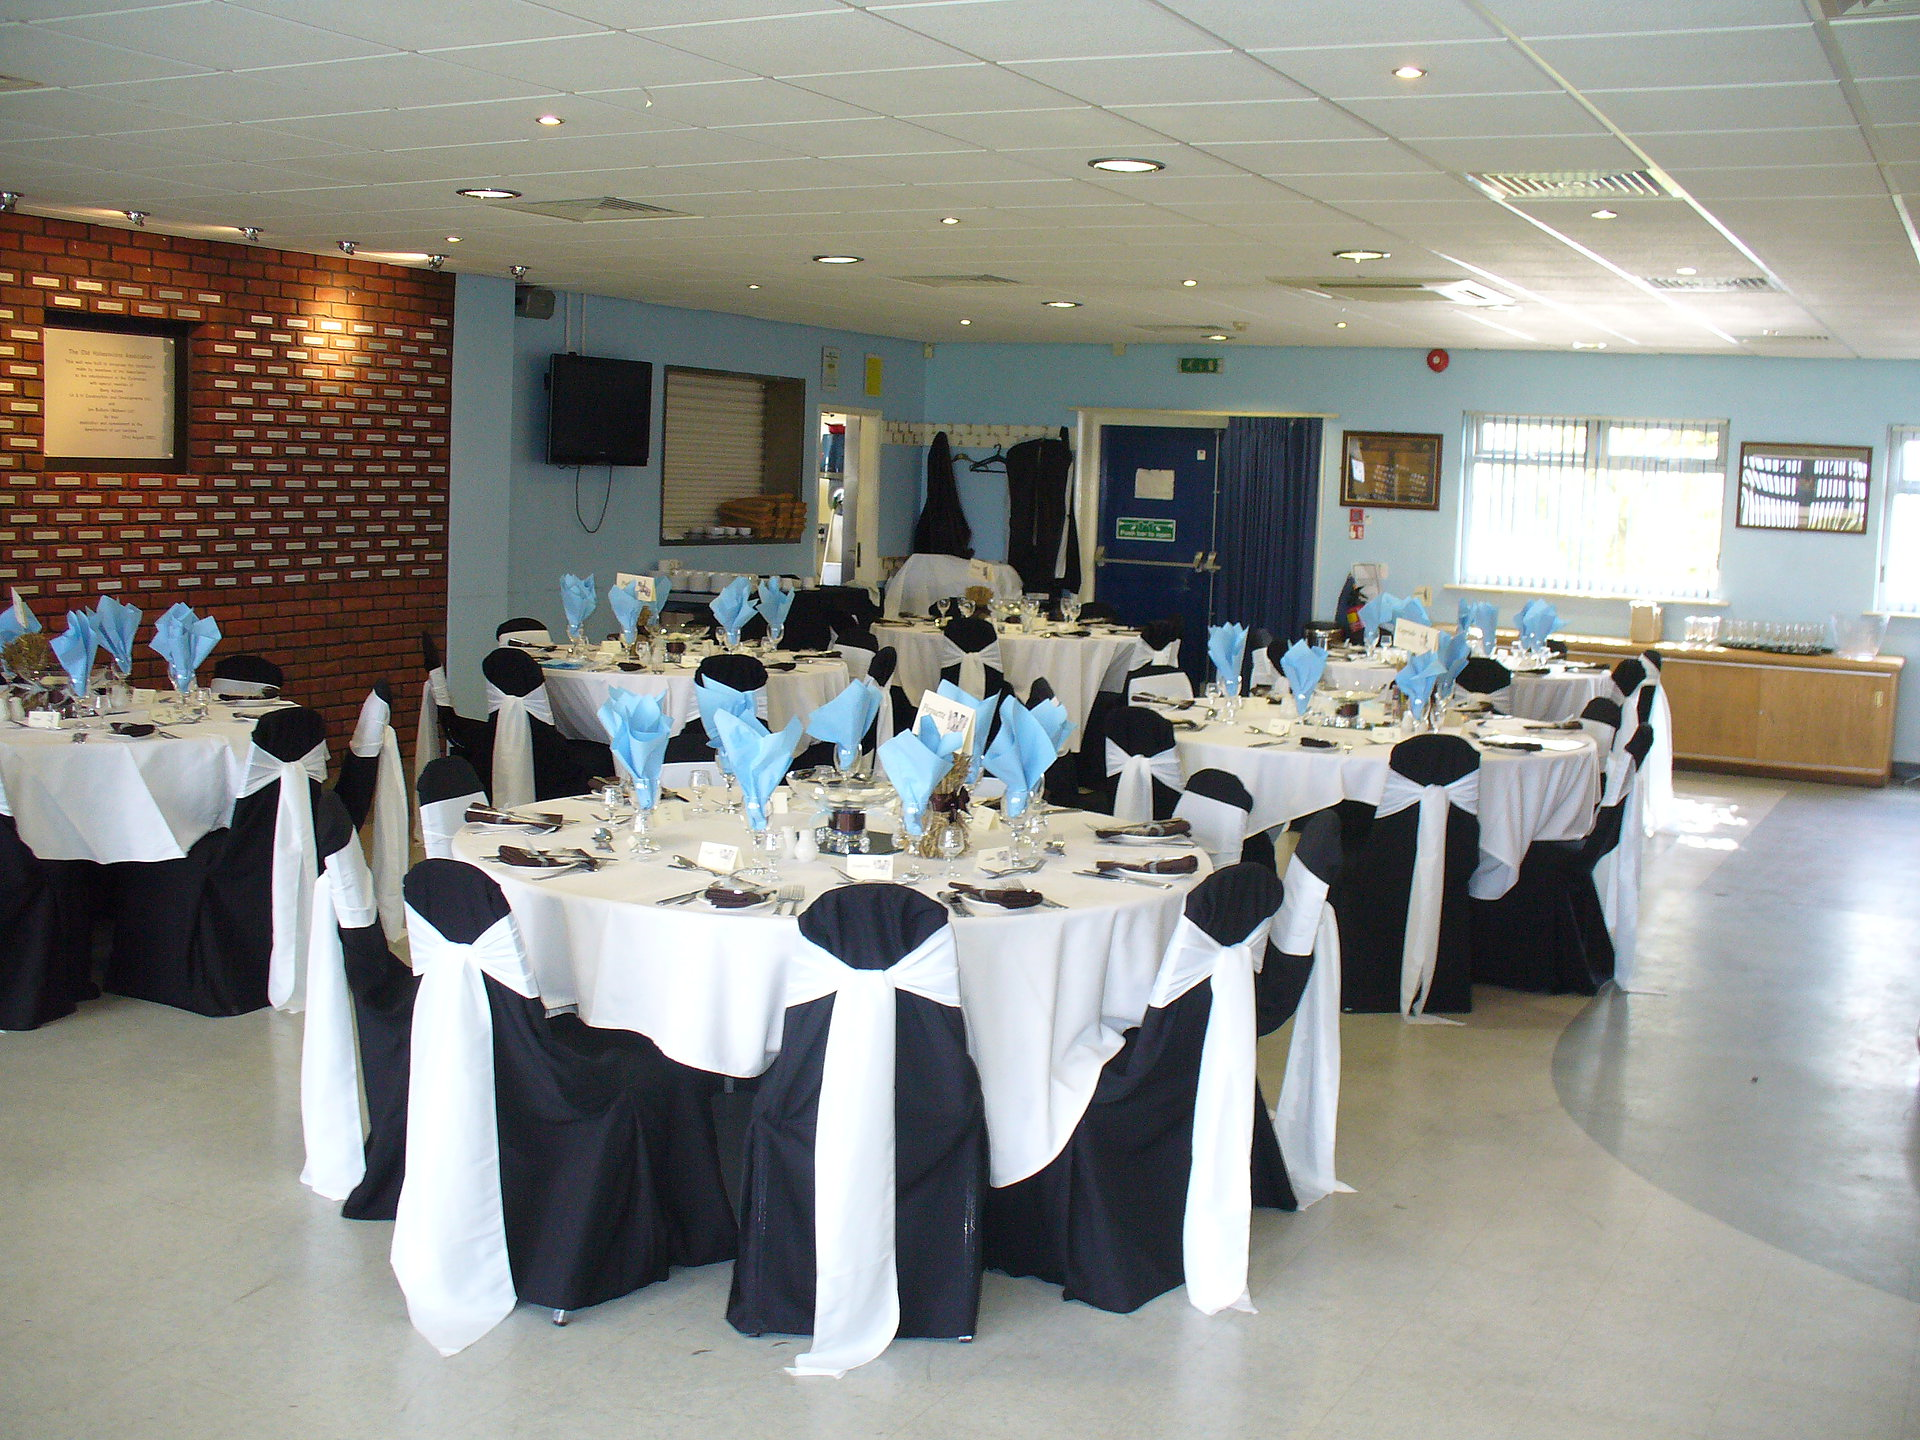 A view of the function room dressed for a wedding